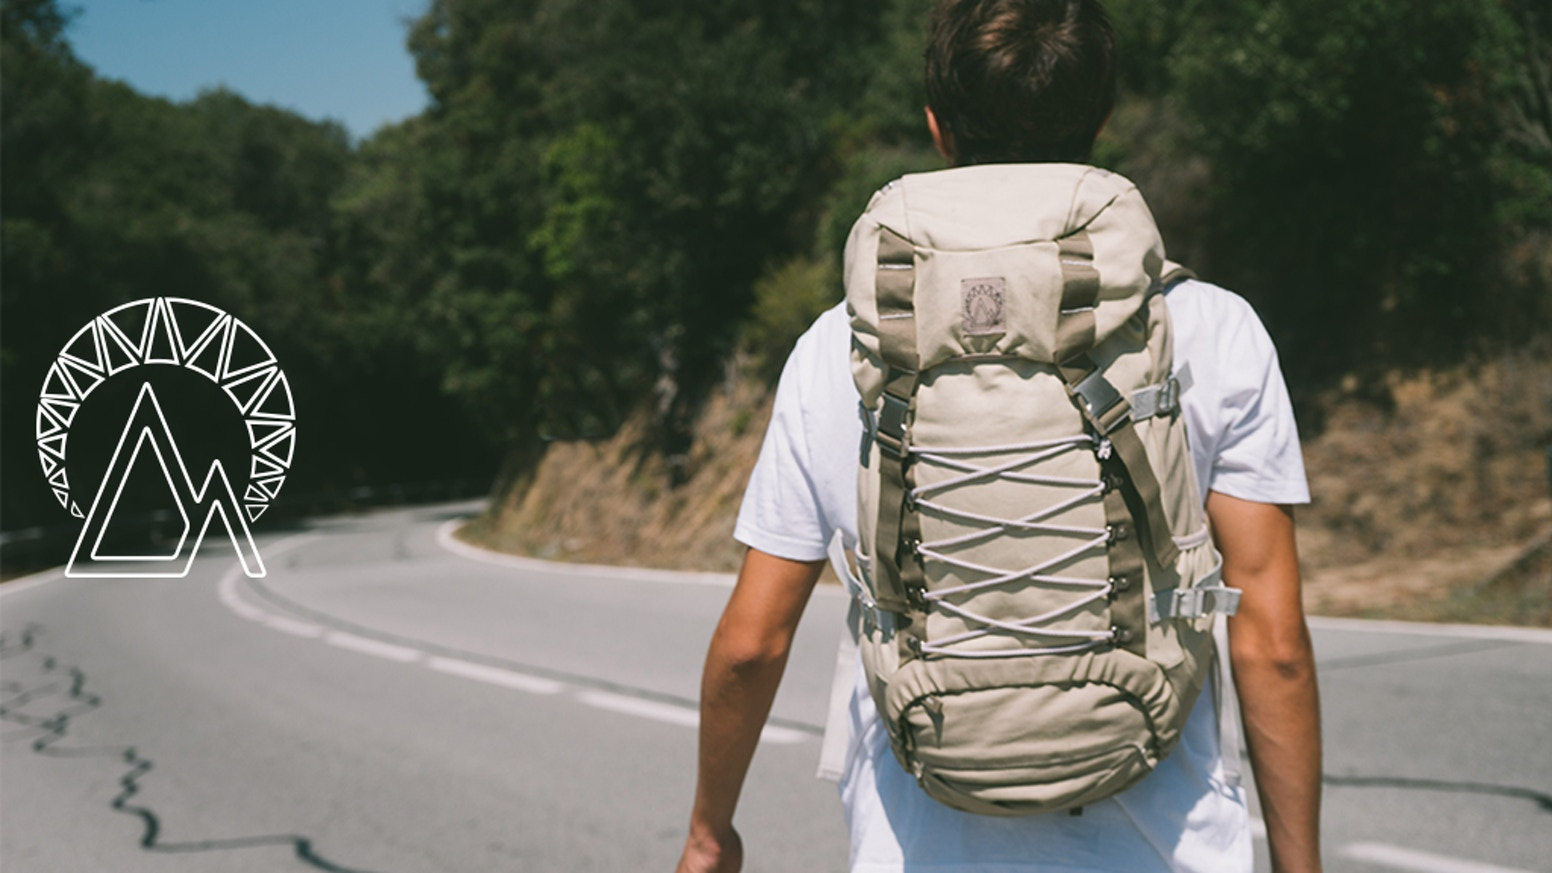 Backpacking gear that changes the way you hit the road. Get yours and start a journey of a lifetime!